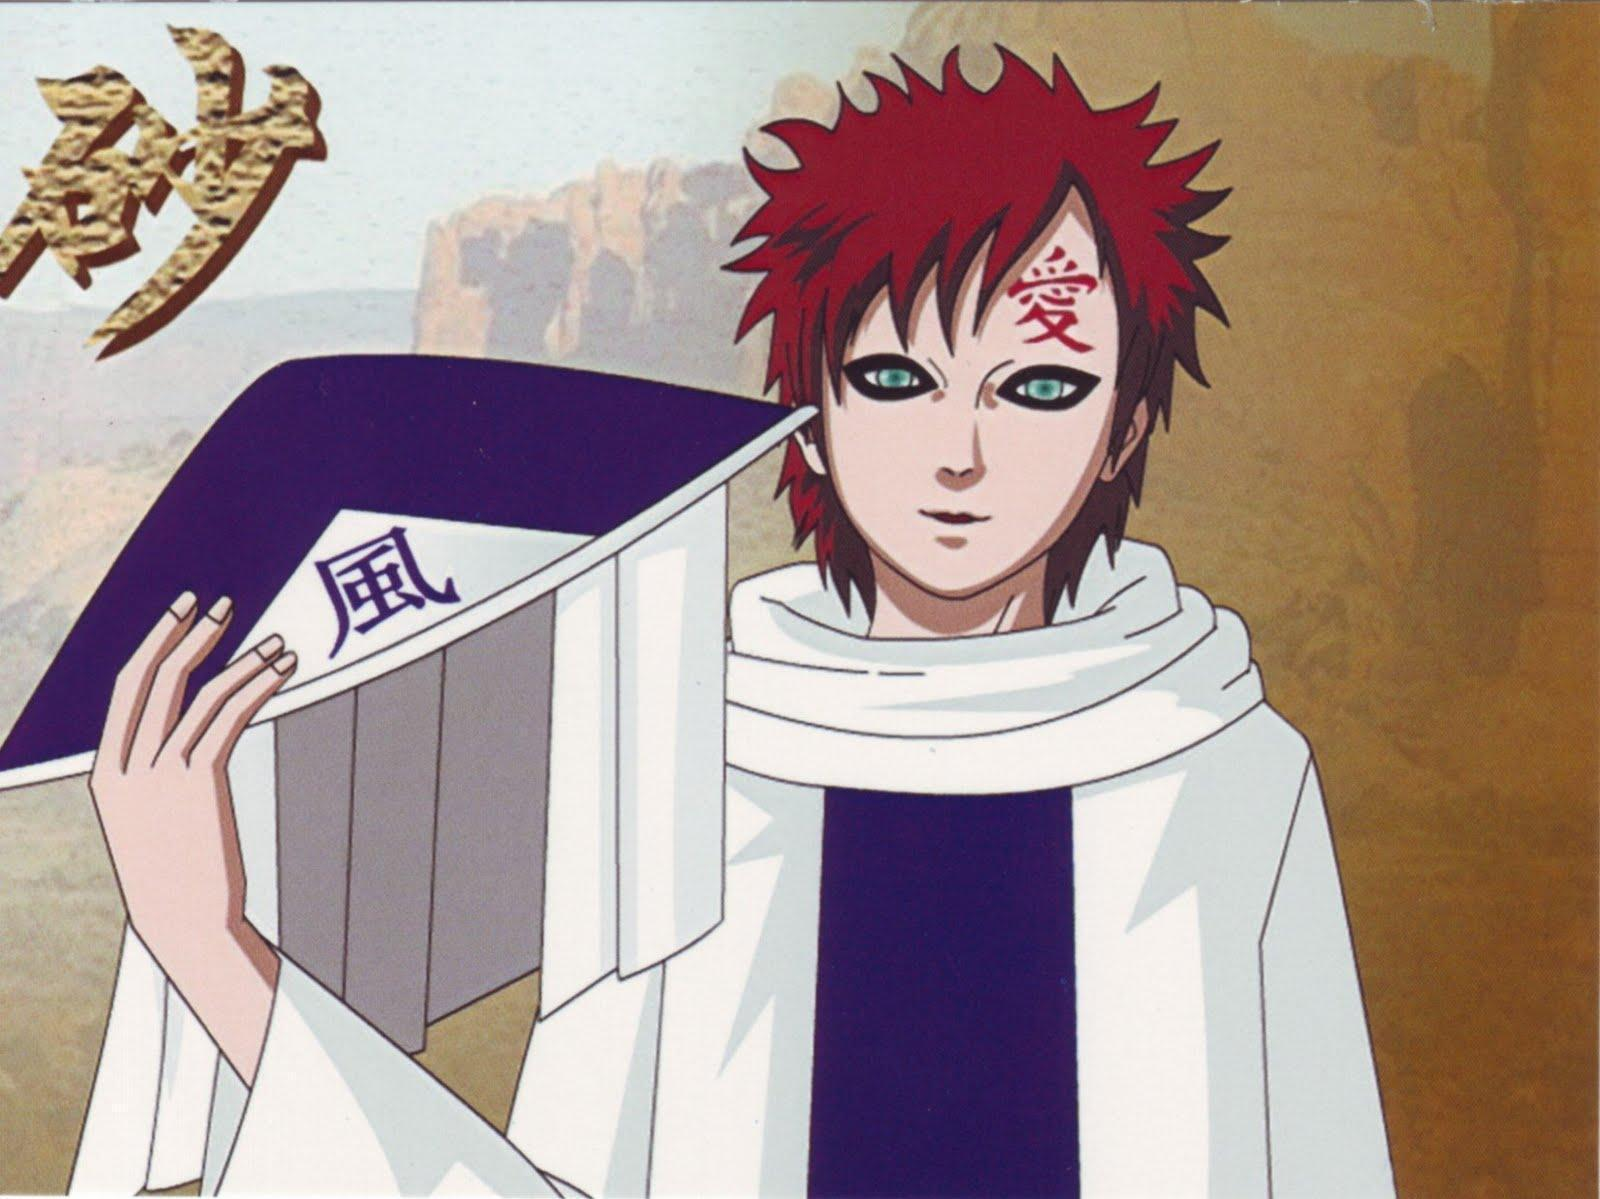 Wallpapers Gaara Kazekage - Wallpaper Cave